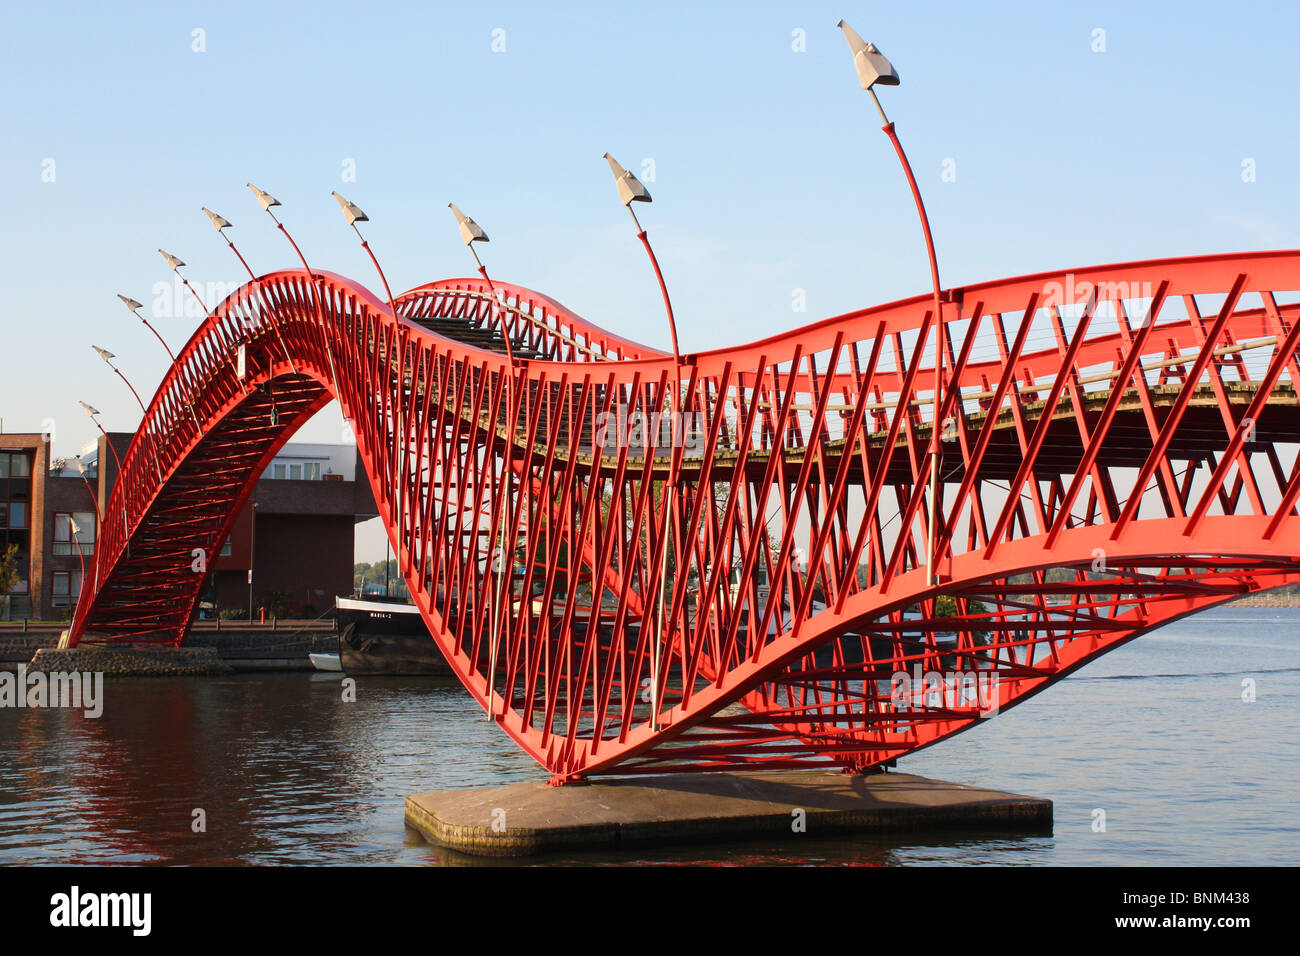 Modern red bridge from Borneo Island to Sporenburg peninsula in the Amsterdam Eastern Docklands. - Stock Image